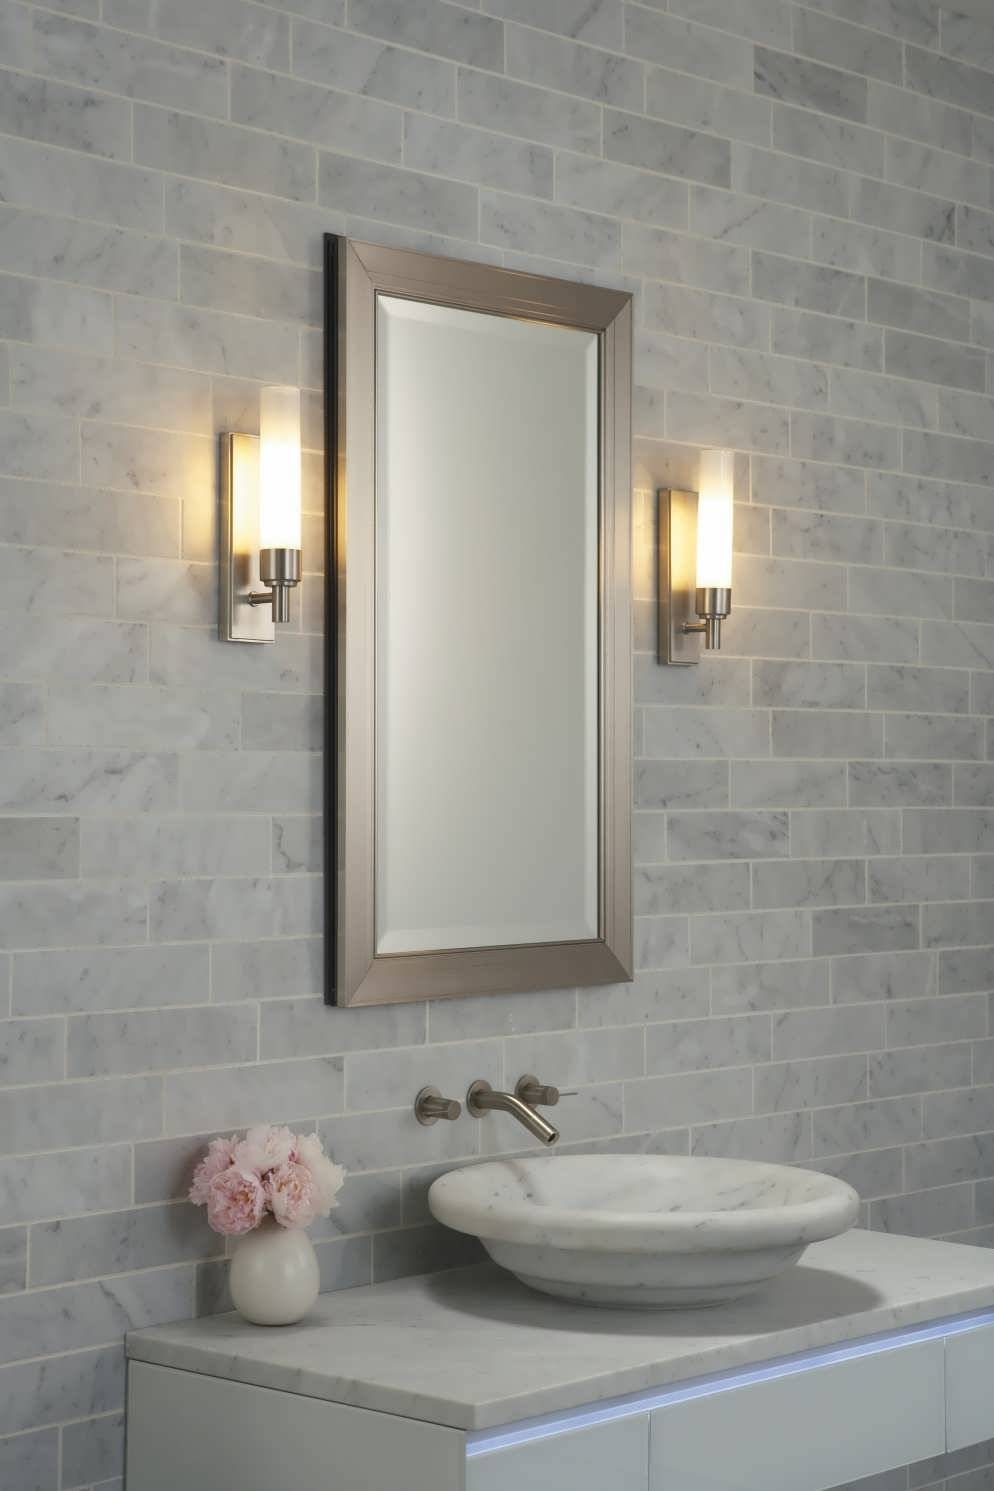 Bathroom Cabinets : Antique Gilded Mirror Arched Bathroom Mirror within Arched Bathroom Mirrors (Image 3 of 15)